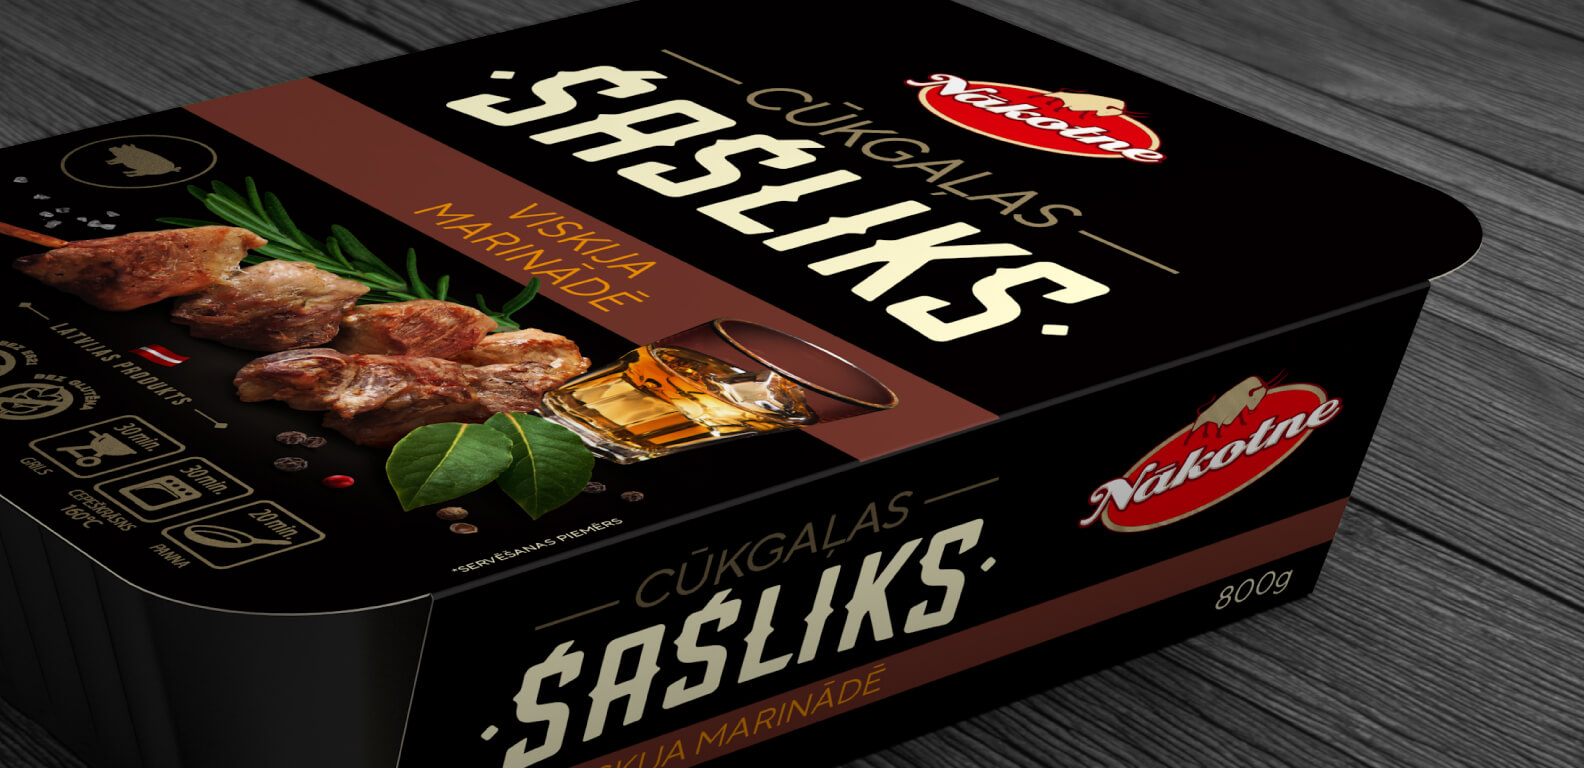 Nākotne pork barbecue meat - packaging design